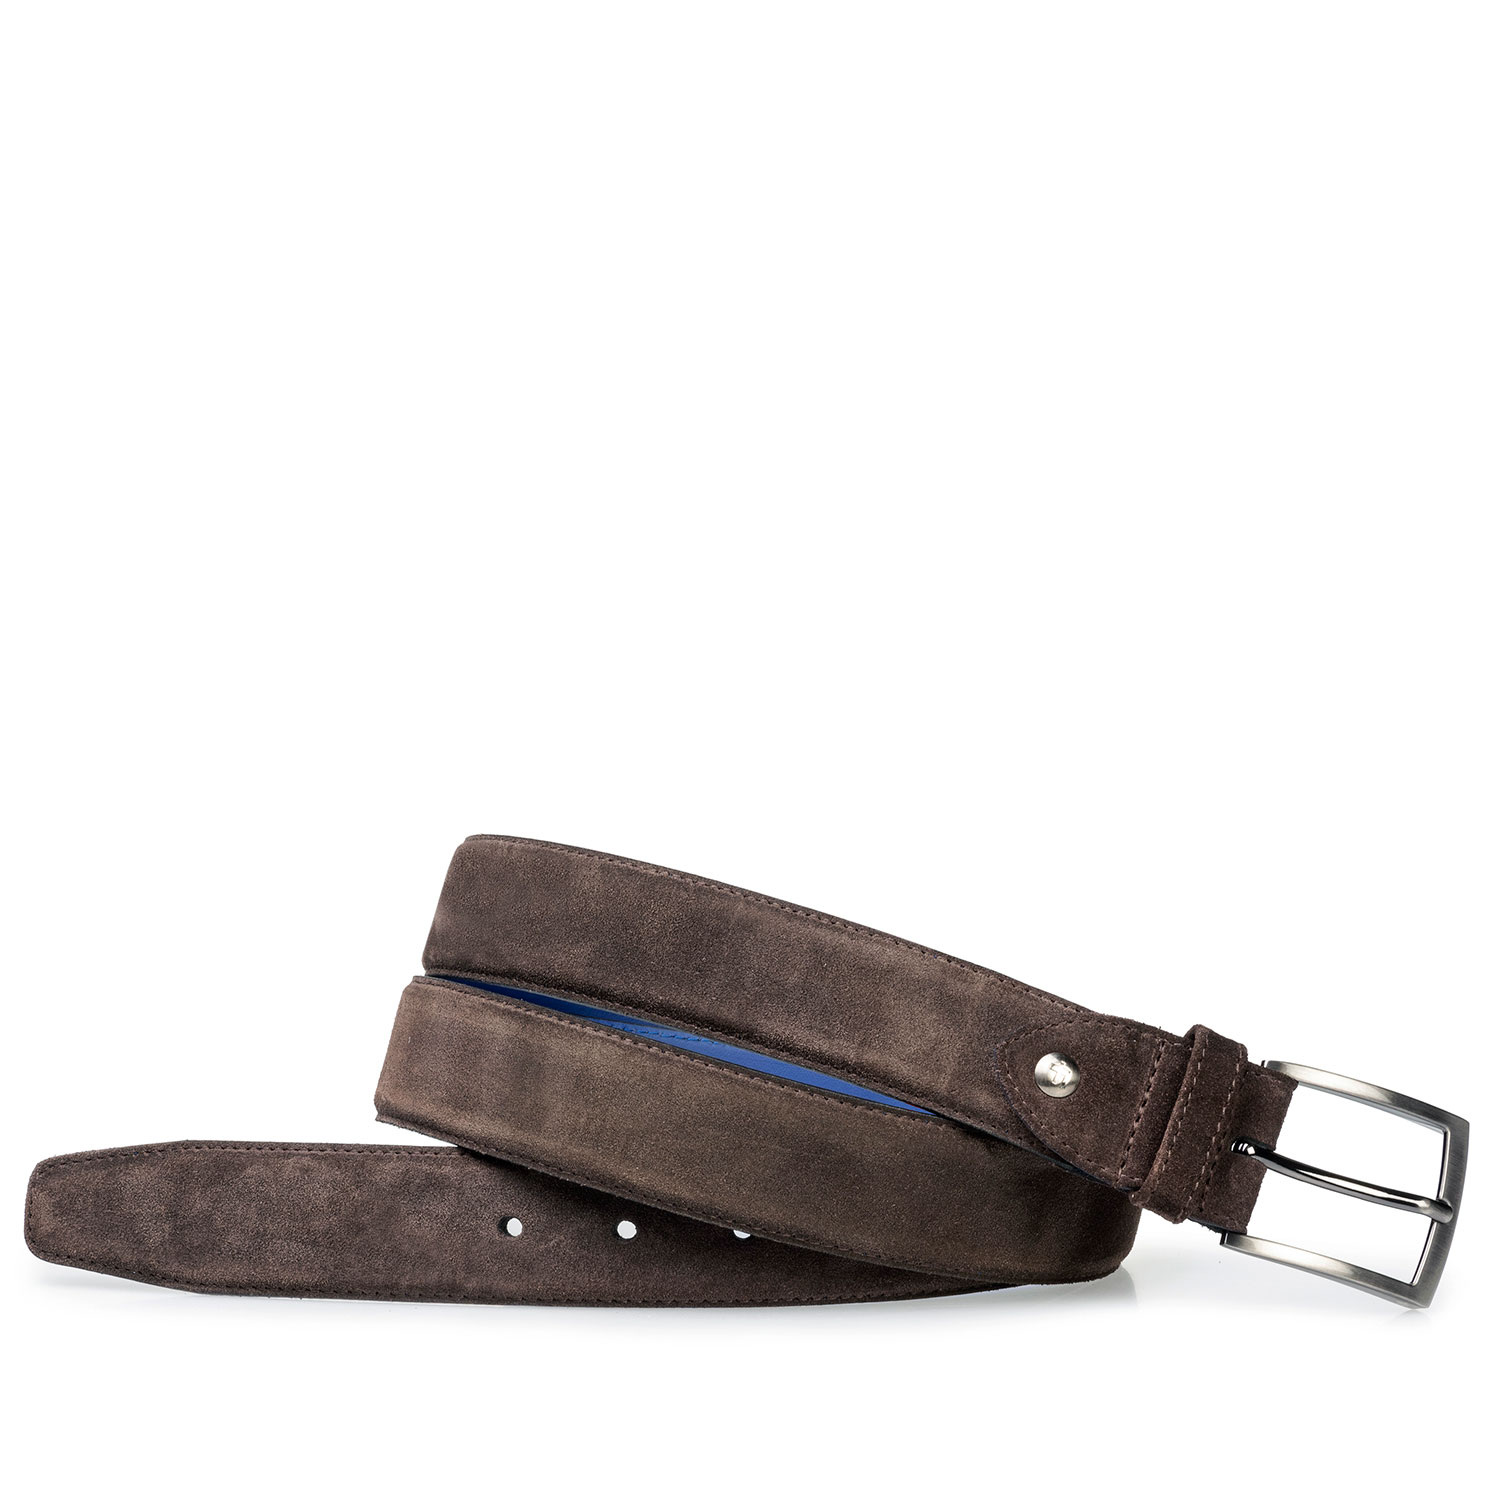 75200/41 - Dark brown suede leather belt